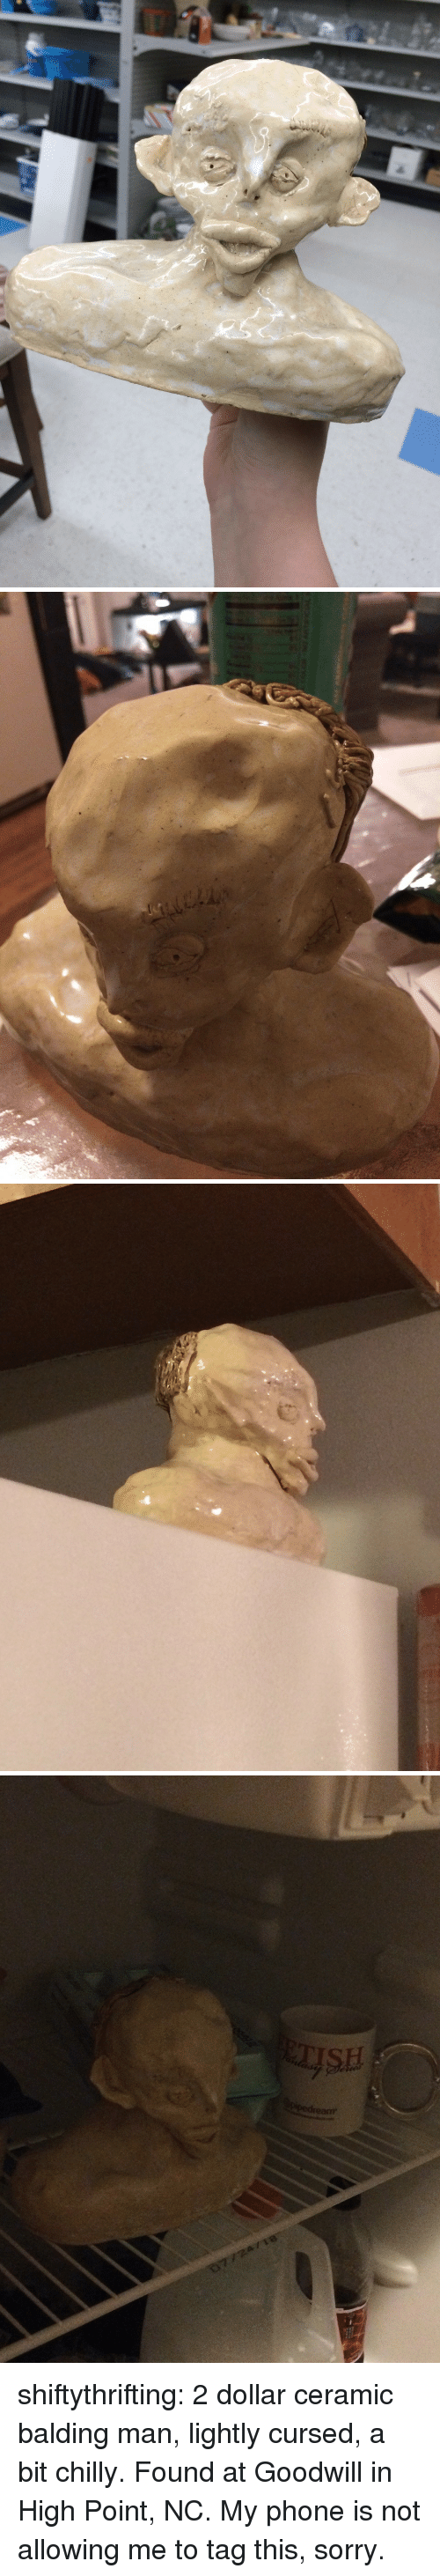 goodwill: SH shiftythrifting:  2 dollar ceramic balding man, lightly cursed, a bit chilly. Found at Goodwill in High Point, NC. My phone is not allowing me to tag this, sorry.